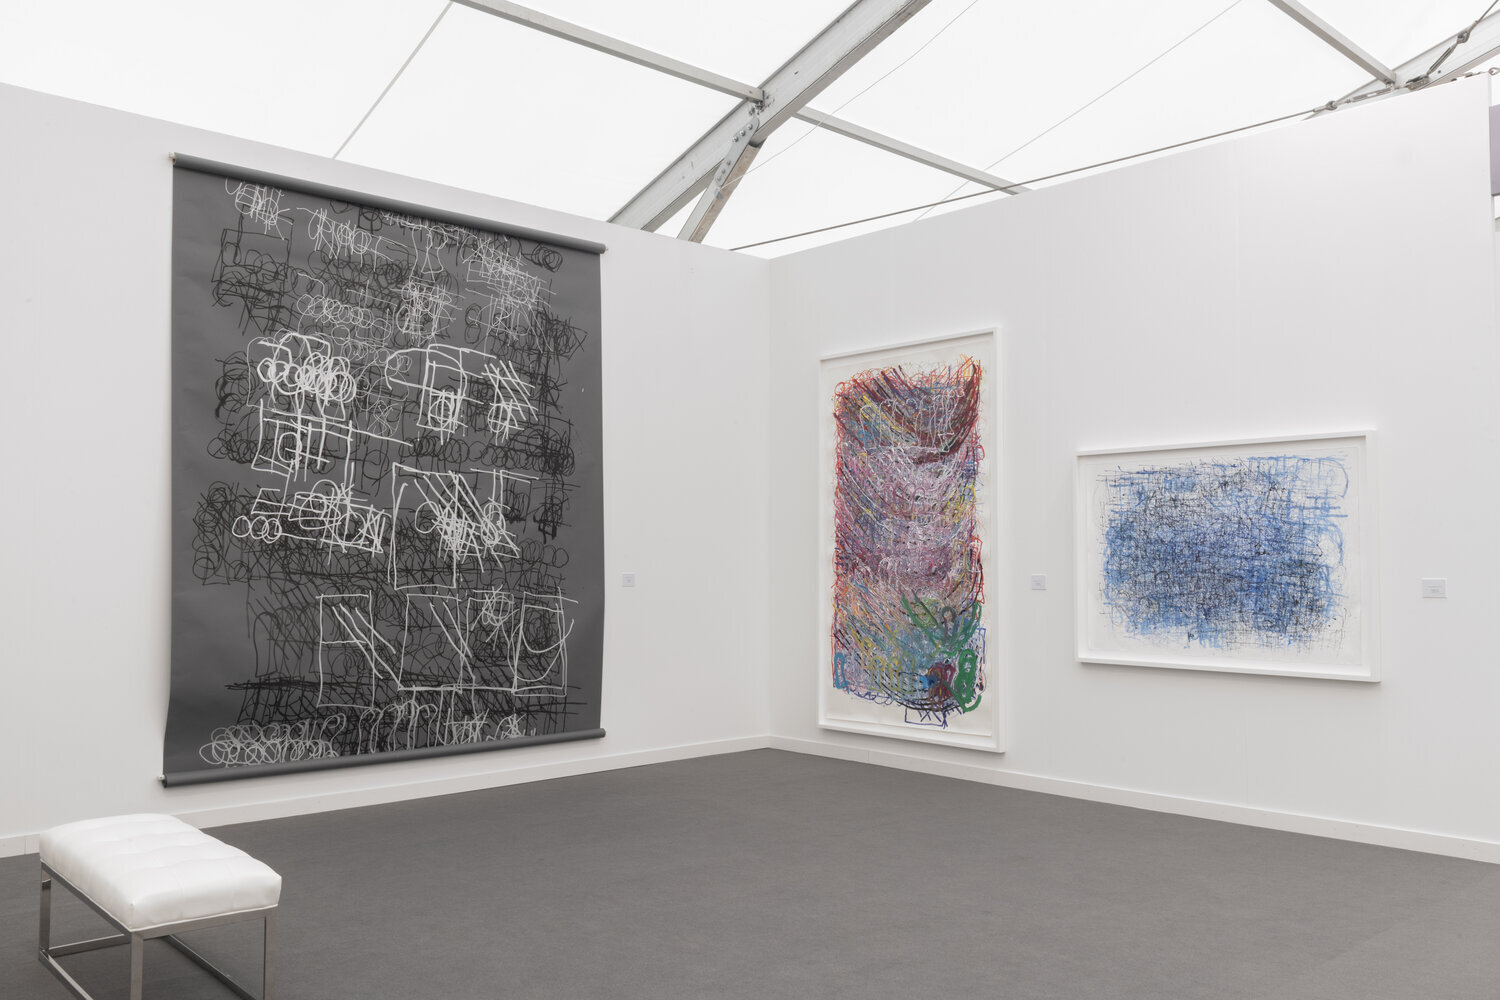 Installation of work by Dan Miller at Andrew Edlin's booth at Frieze New York 2019